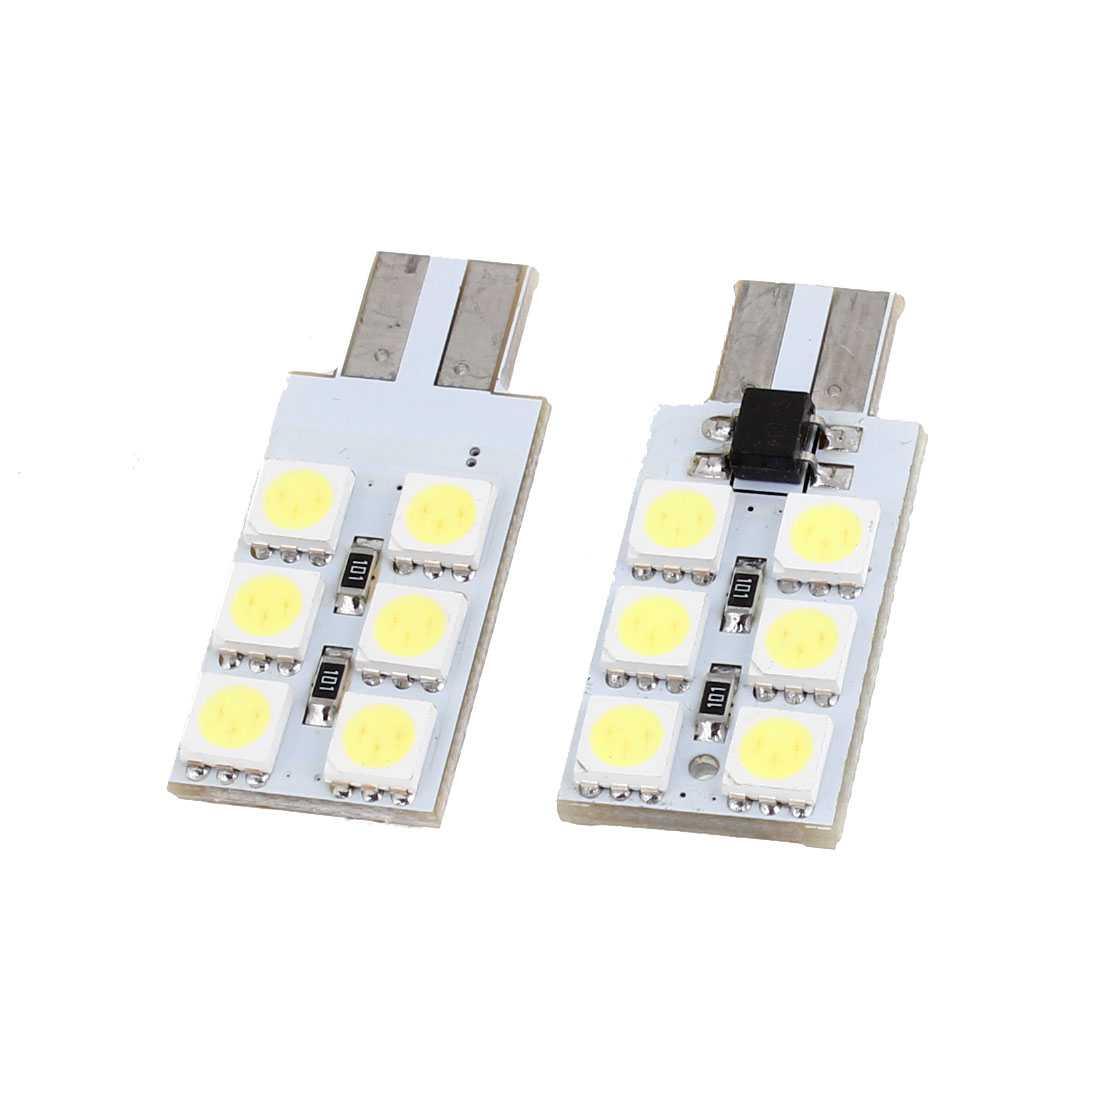 2pcs White 12 LED 5050 SMD Canbus Dashboard Dash Light Lamp Bulb T10 for Car